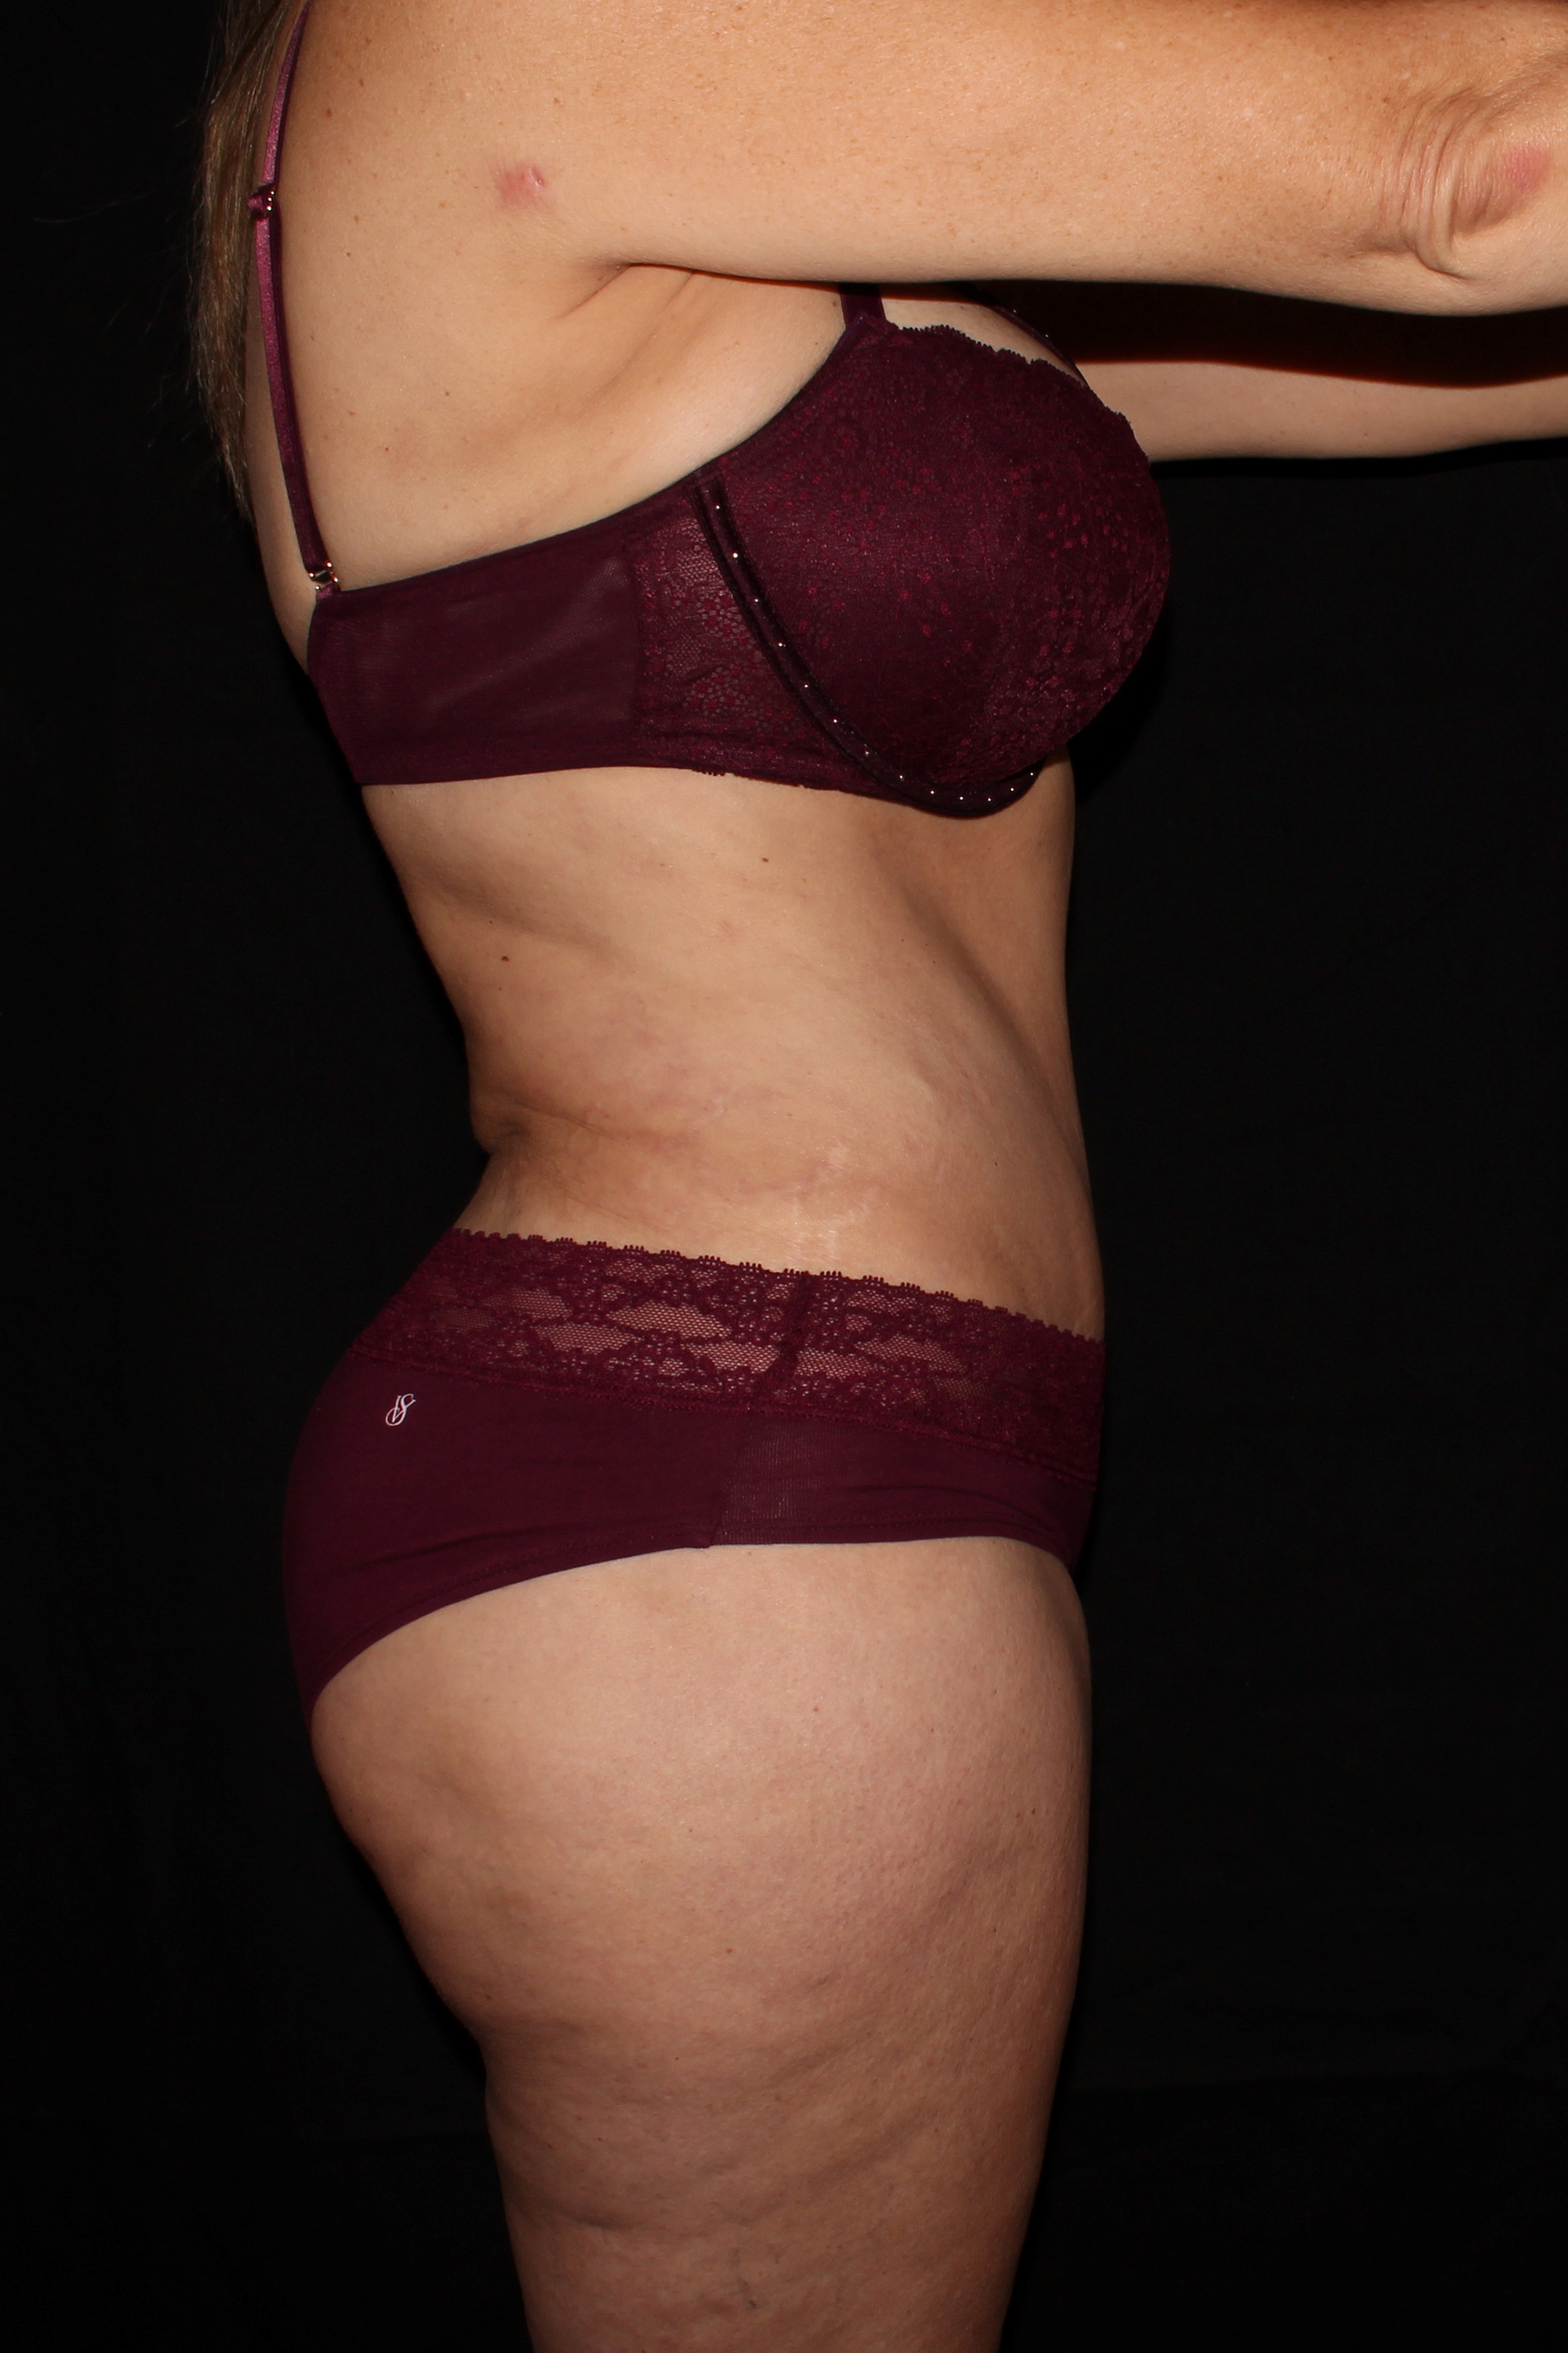 After Tummy Tuck - Side